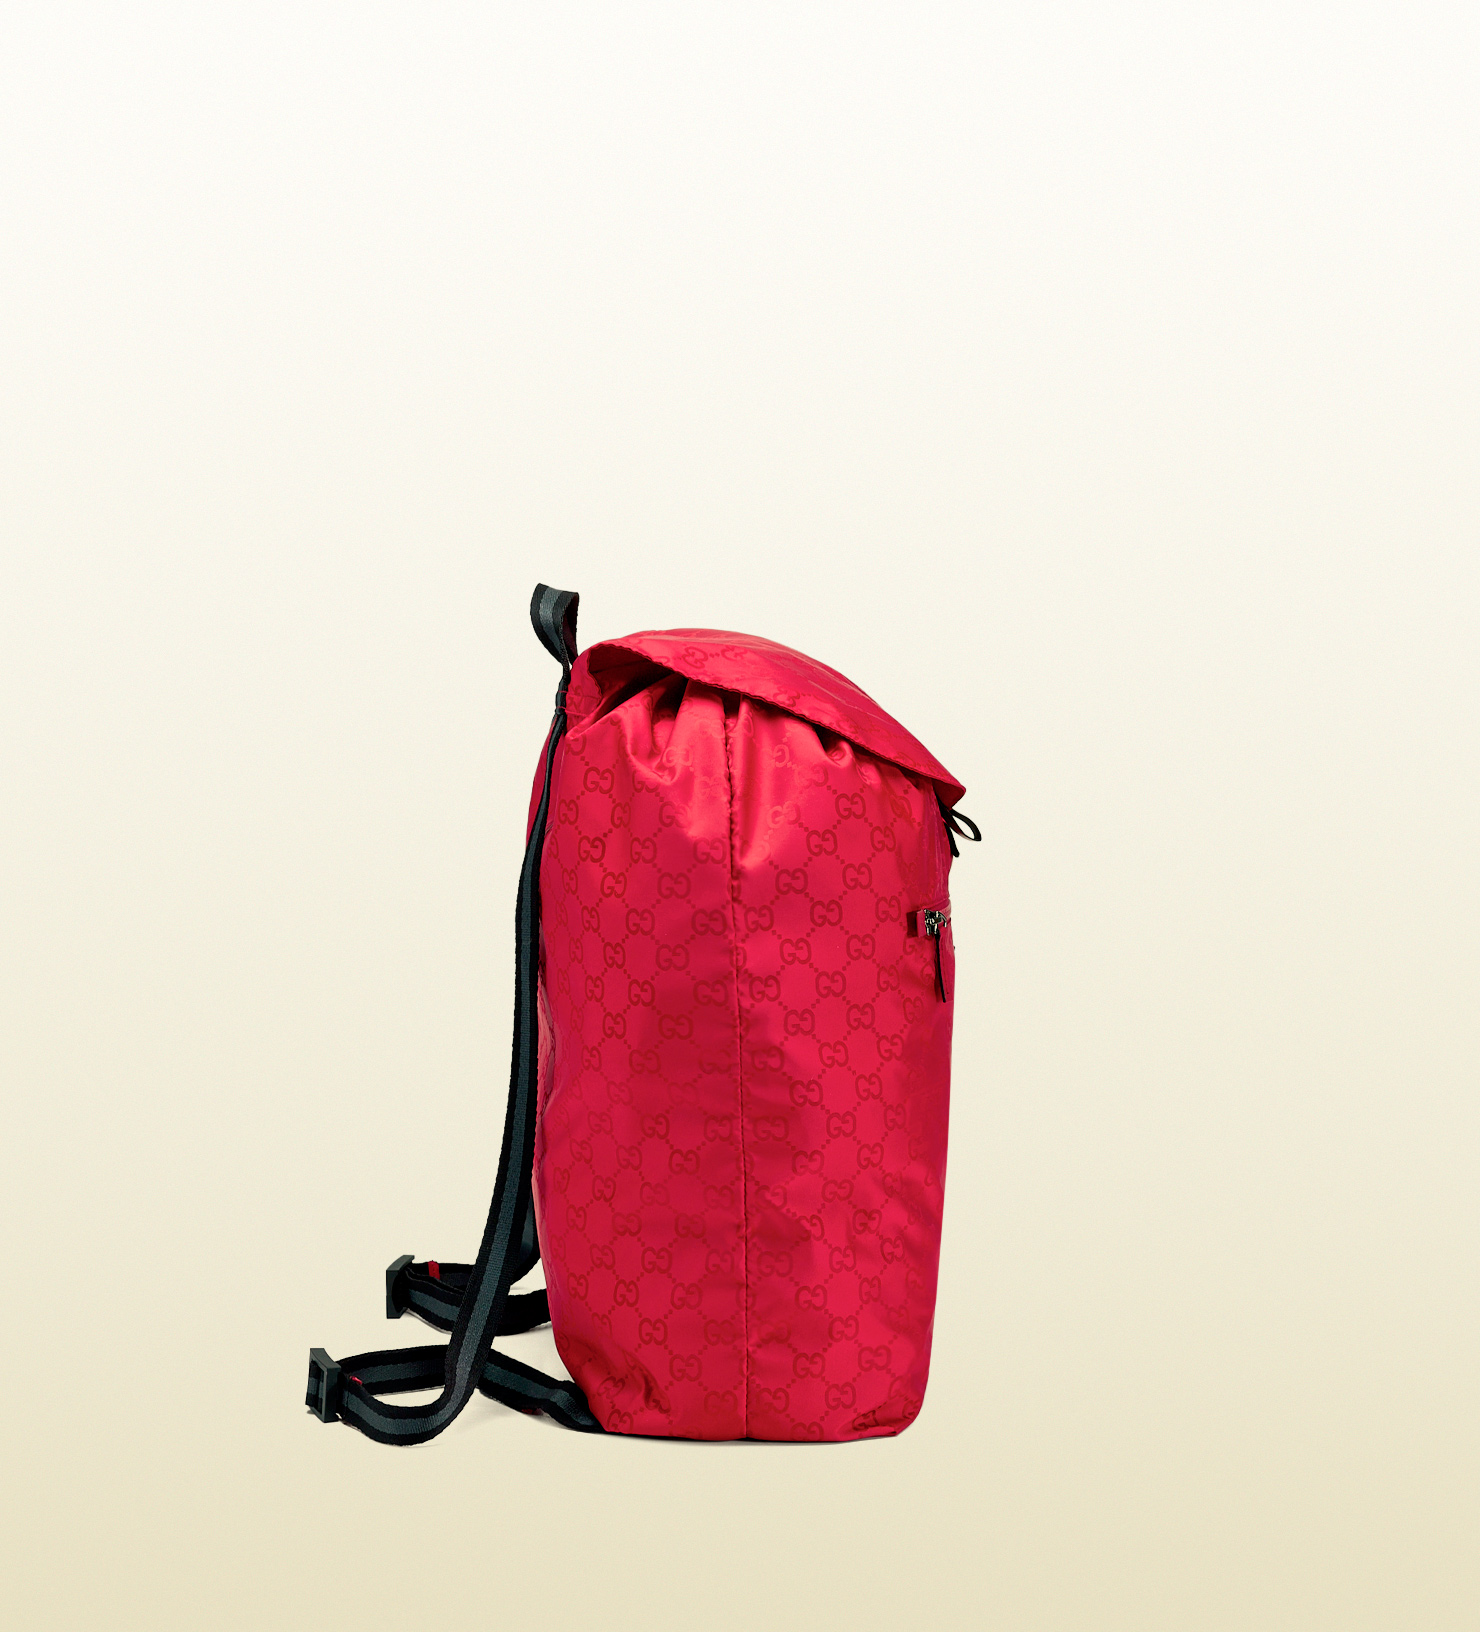 Gucci Gg Nylon Backpack From The Viaggio Collection in Red